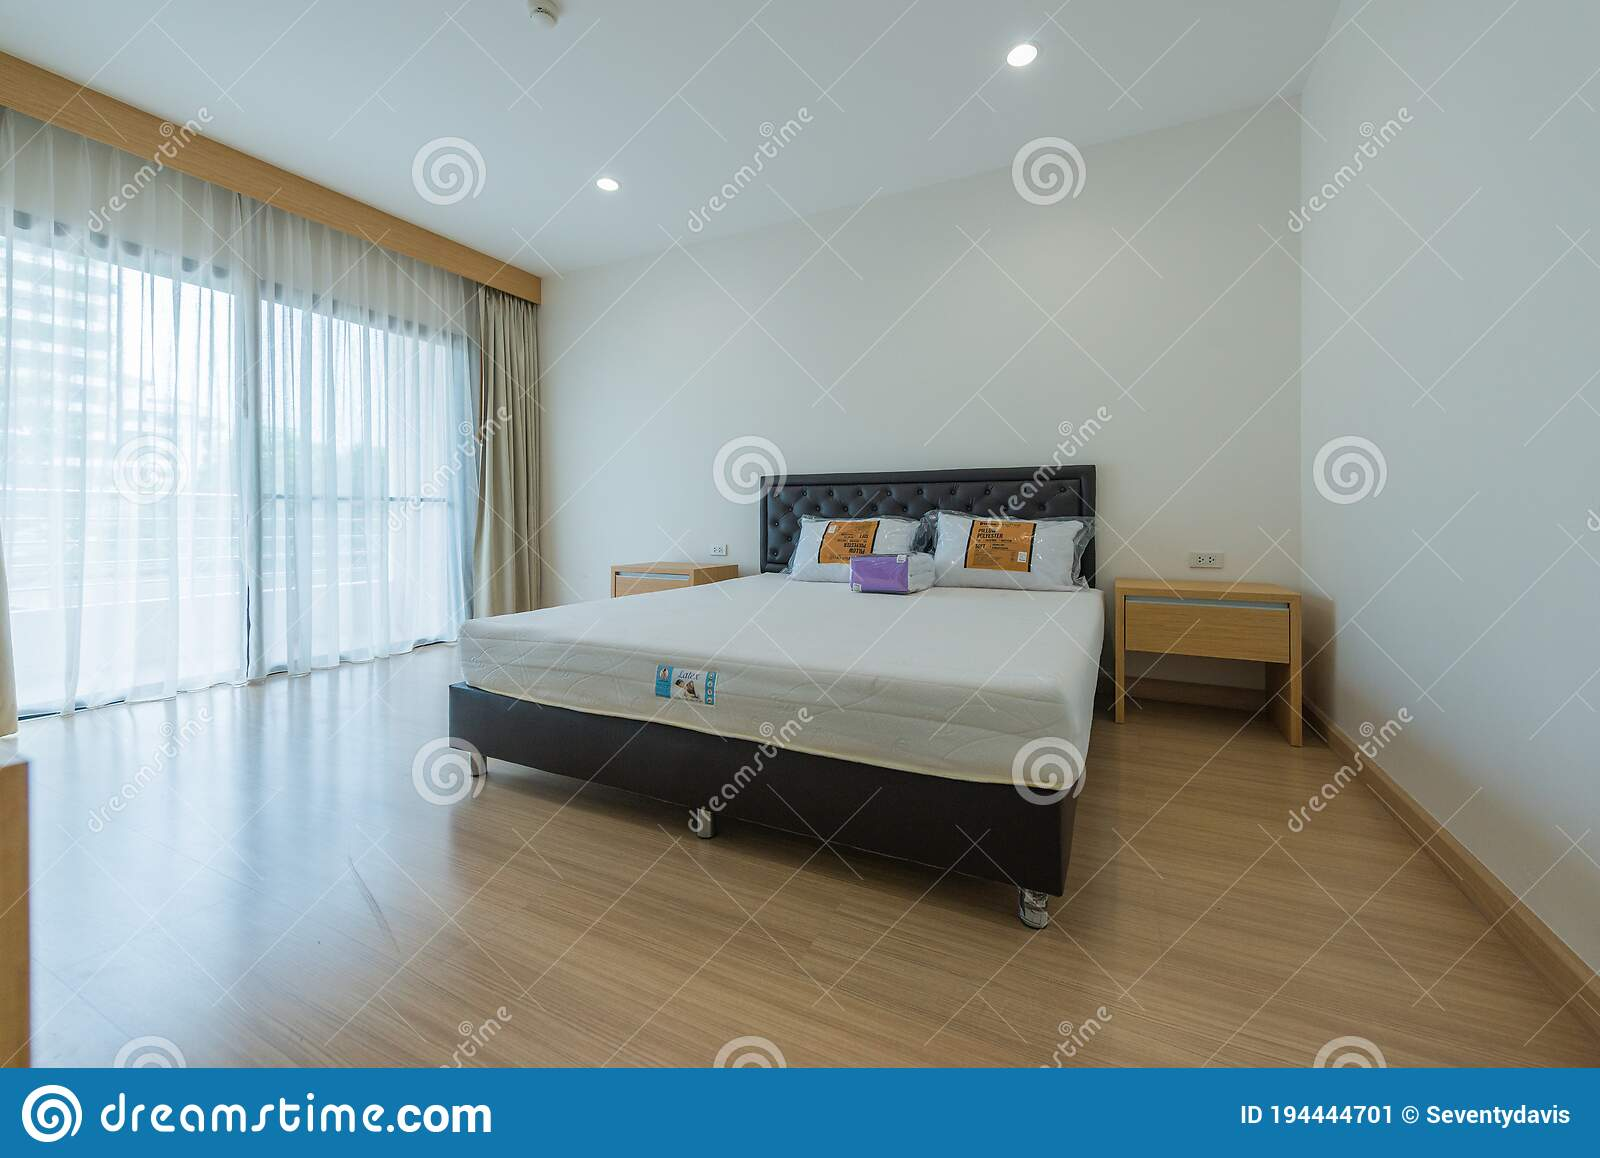 Modern Interior Design In Small Apartment With Bedroom Stock Image Image Of Ambient Clean 194444701